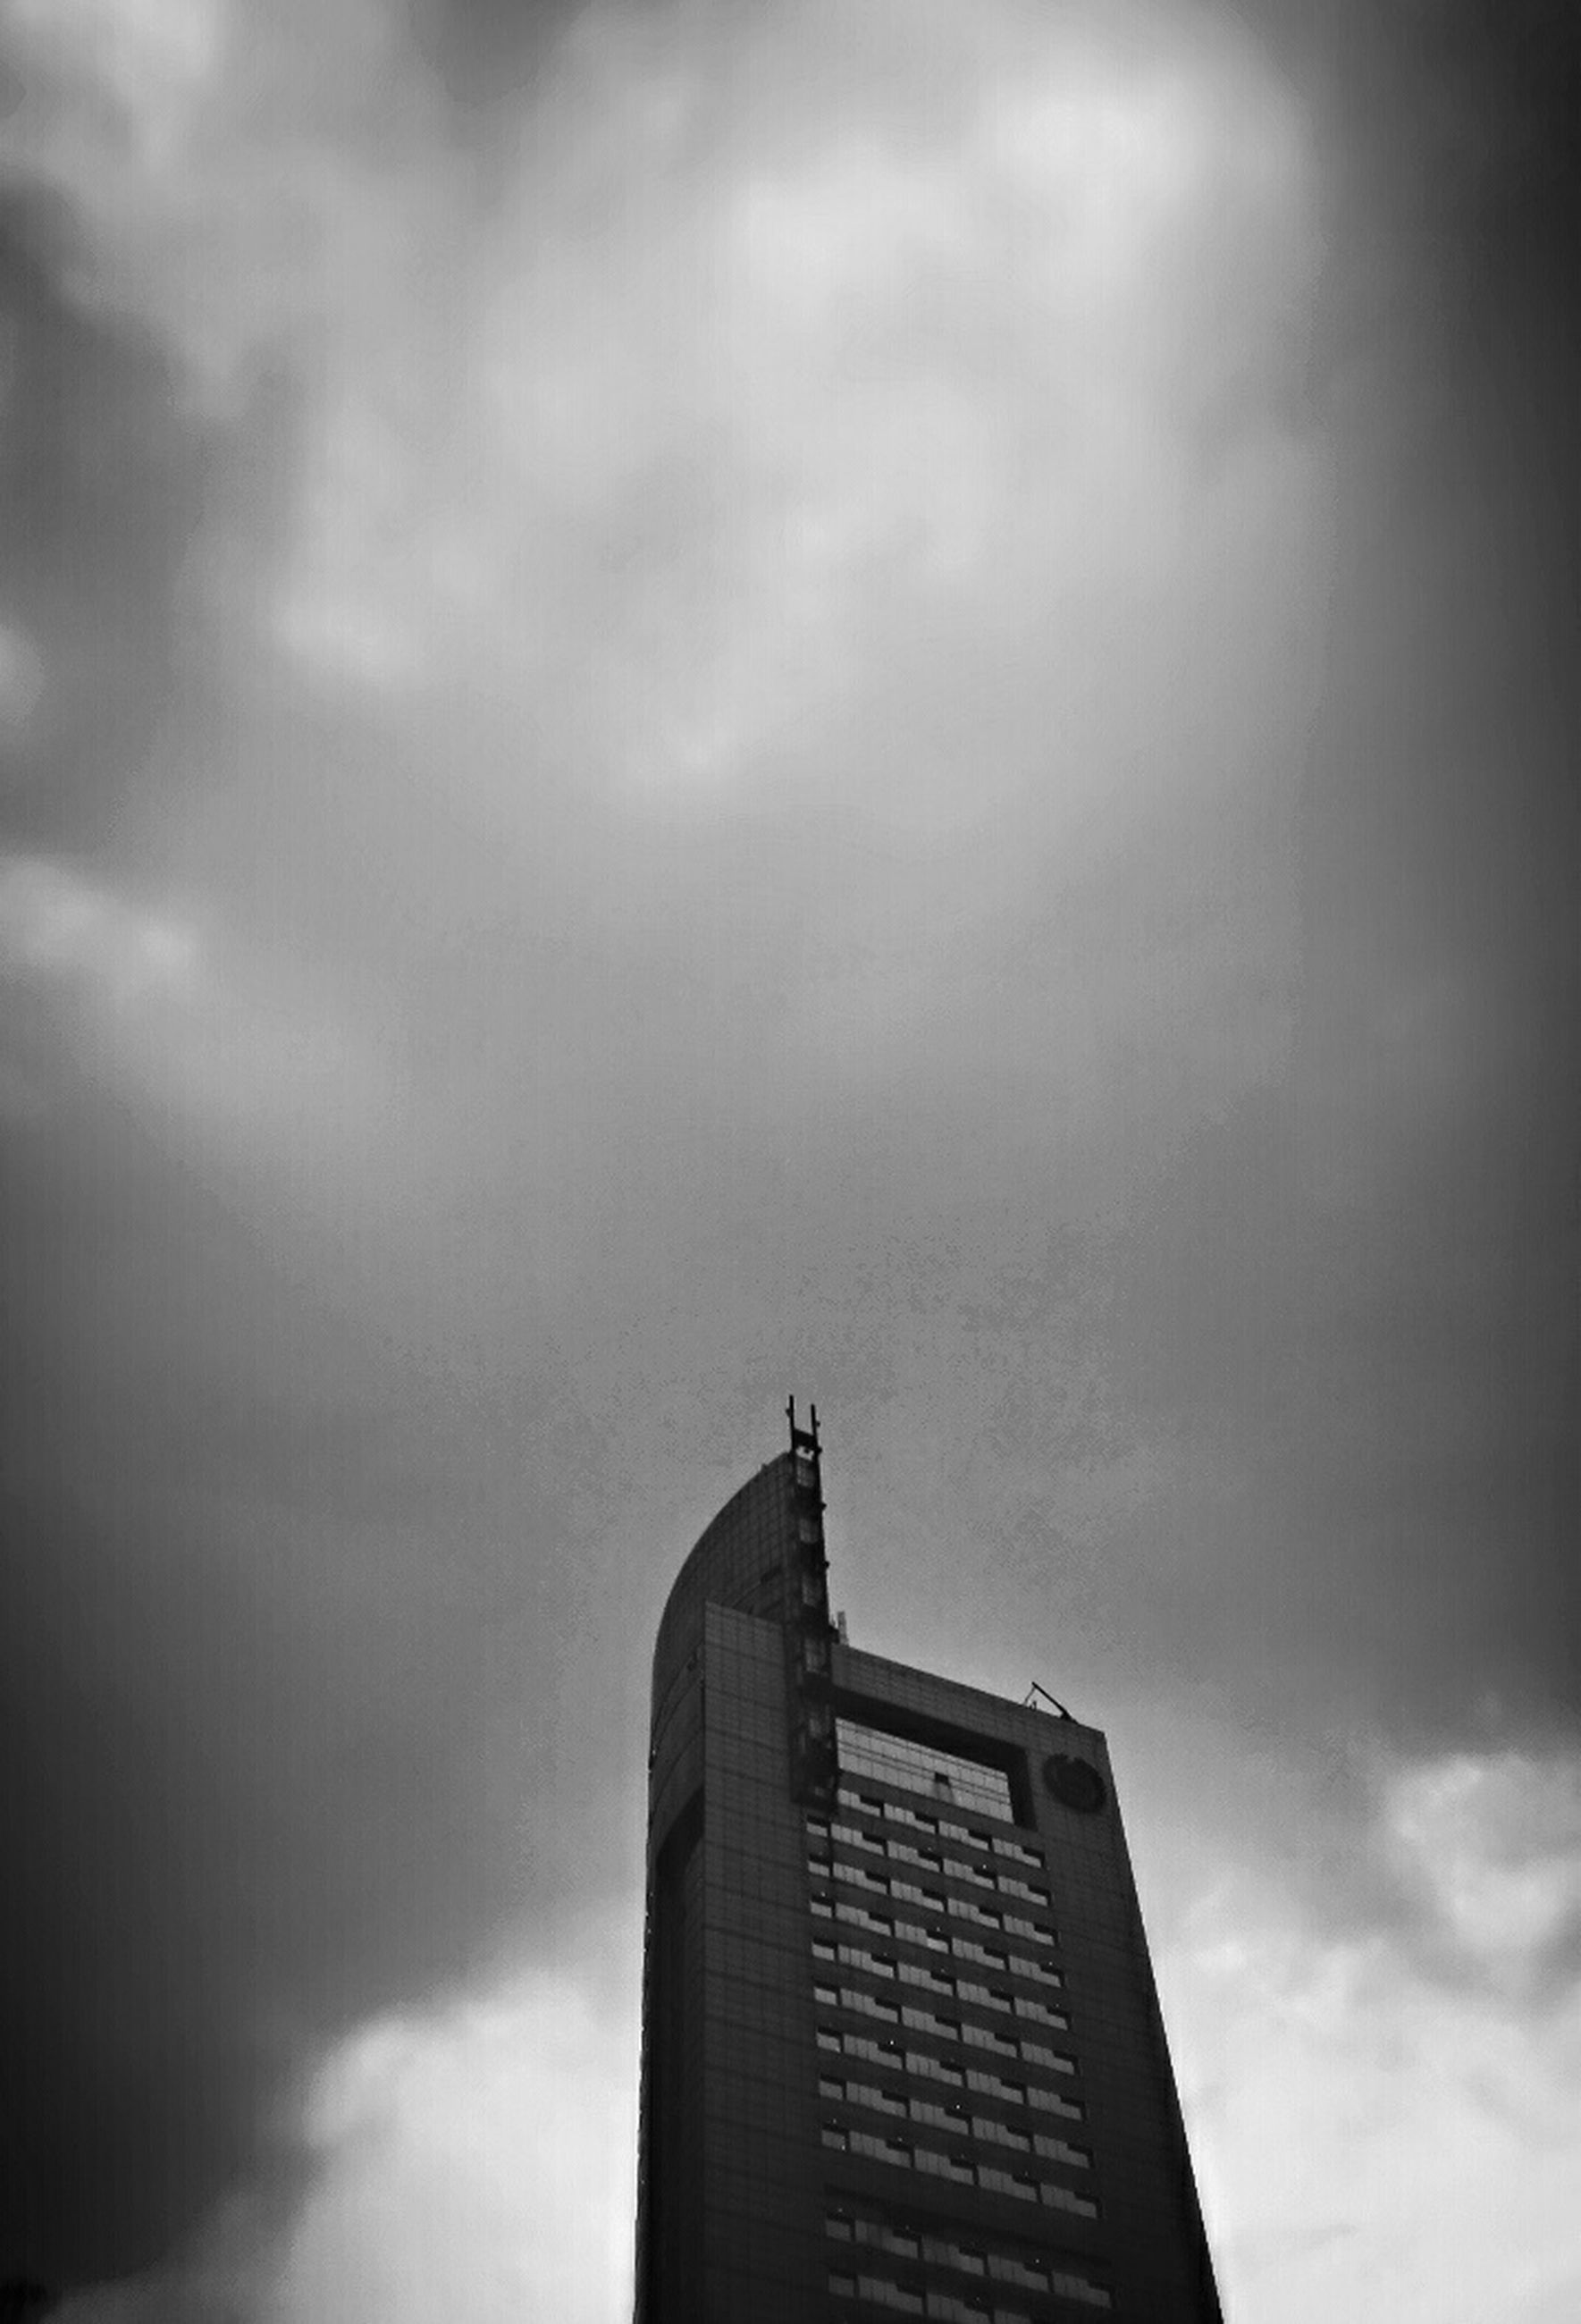 architecture, building exterior, built structure, low angle view, sky, cloud - sky, cloudy, city, building, overcast, weather, tall - high, tower, modern, cloud, office building, skyscraper, outdoors, day, high section